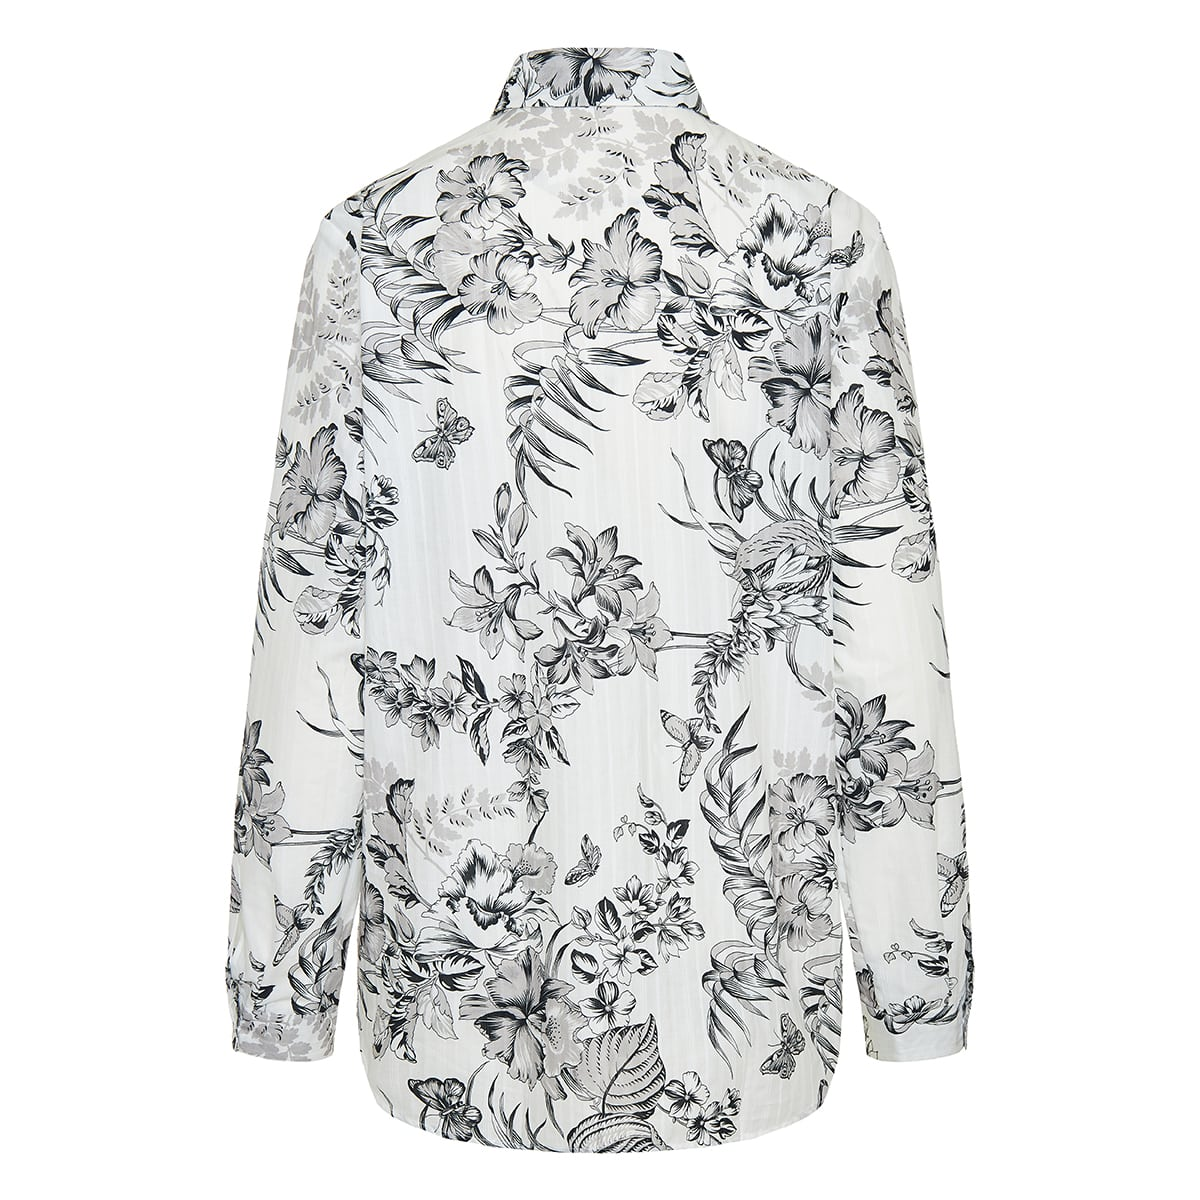 Floral jacquard cotton shirt